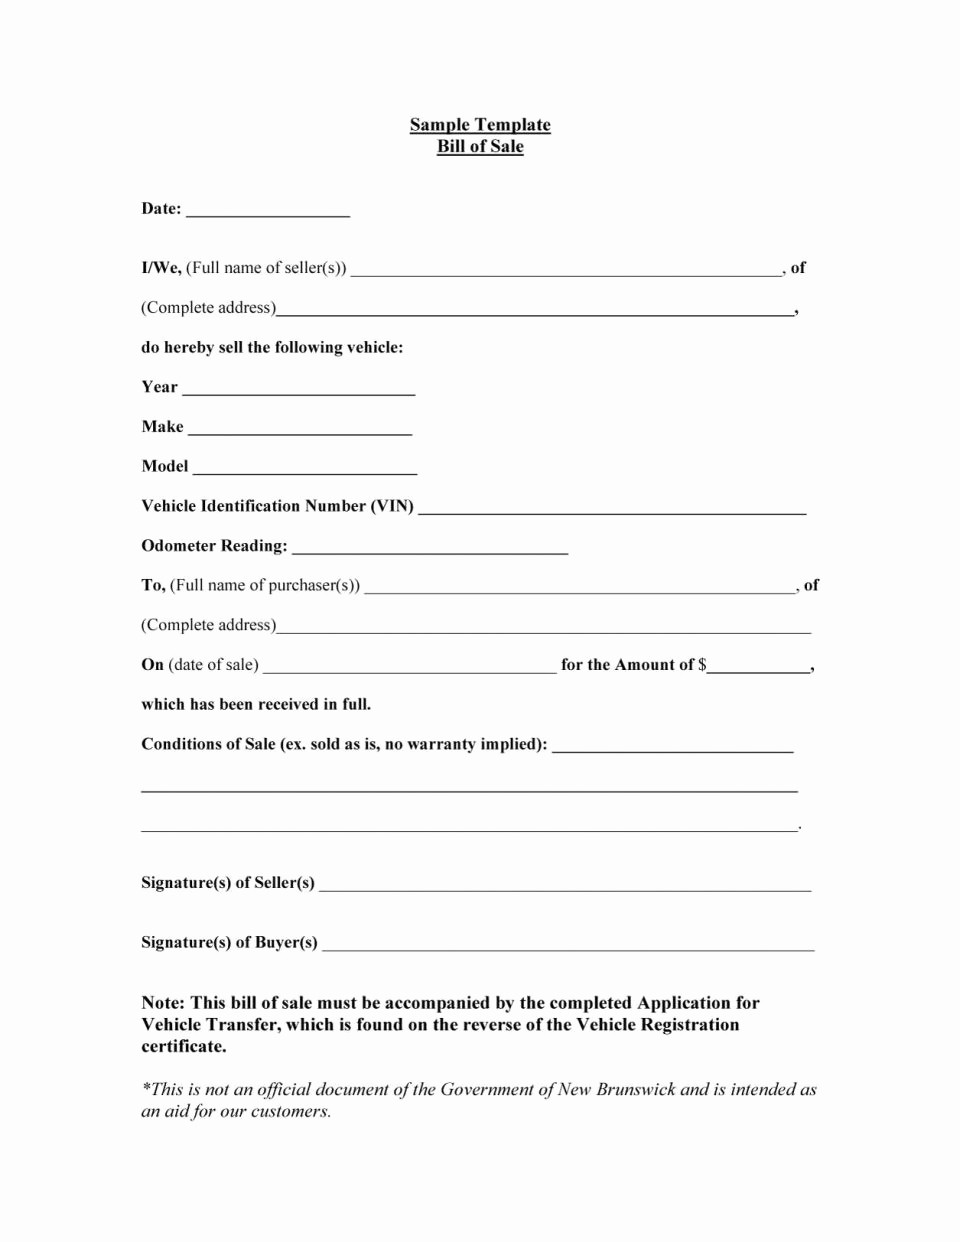 Bill Of Sale Illinois Pdf Luxury Illinois Vehicle Billf Sale Template Free Boat Pdf 90kb